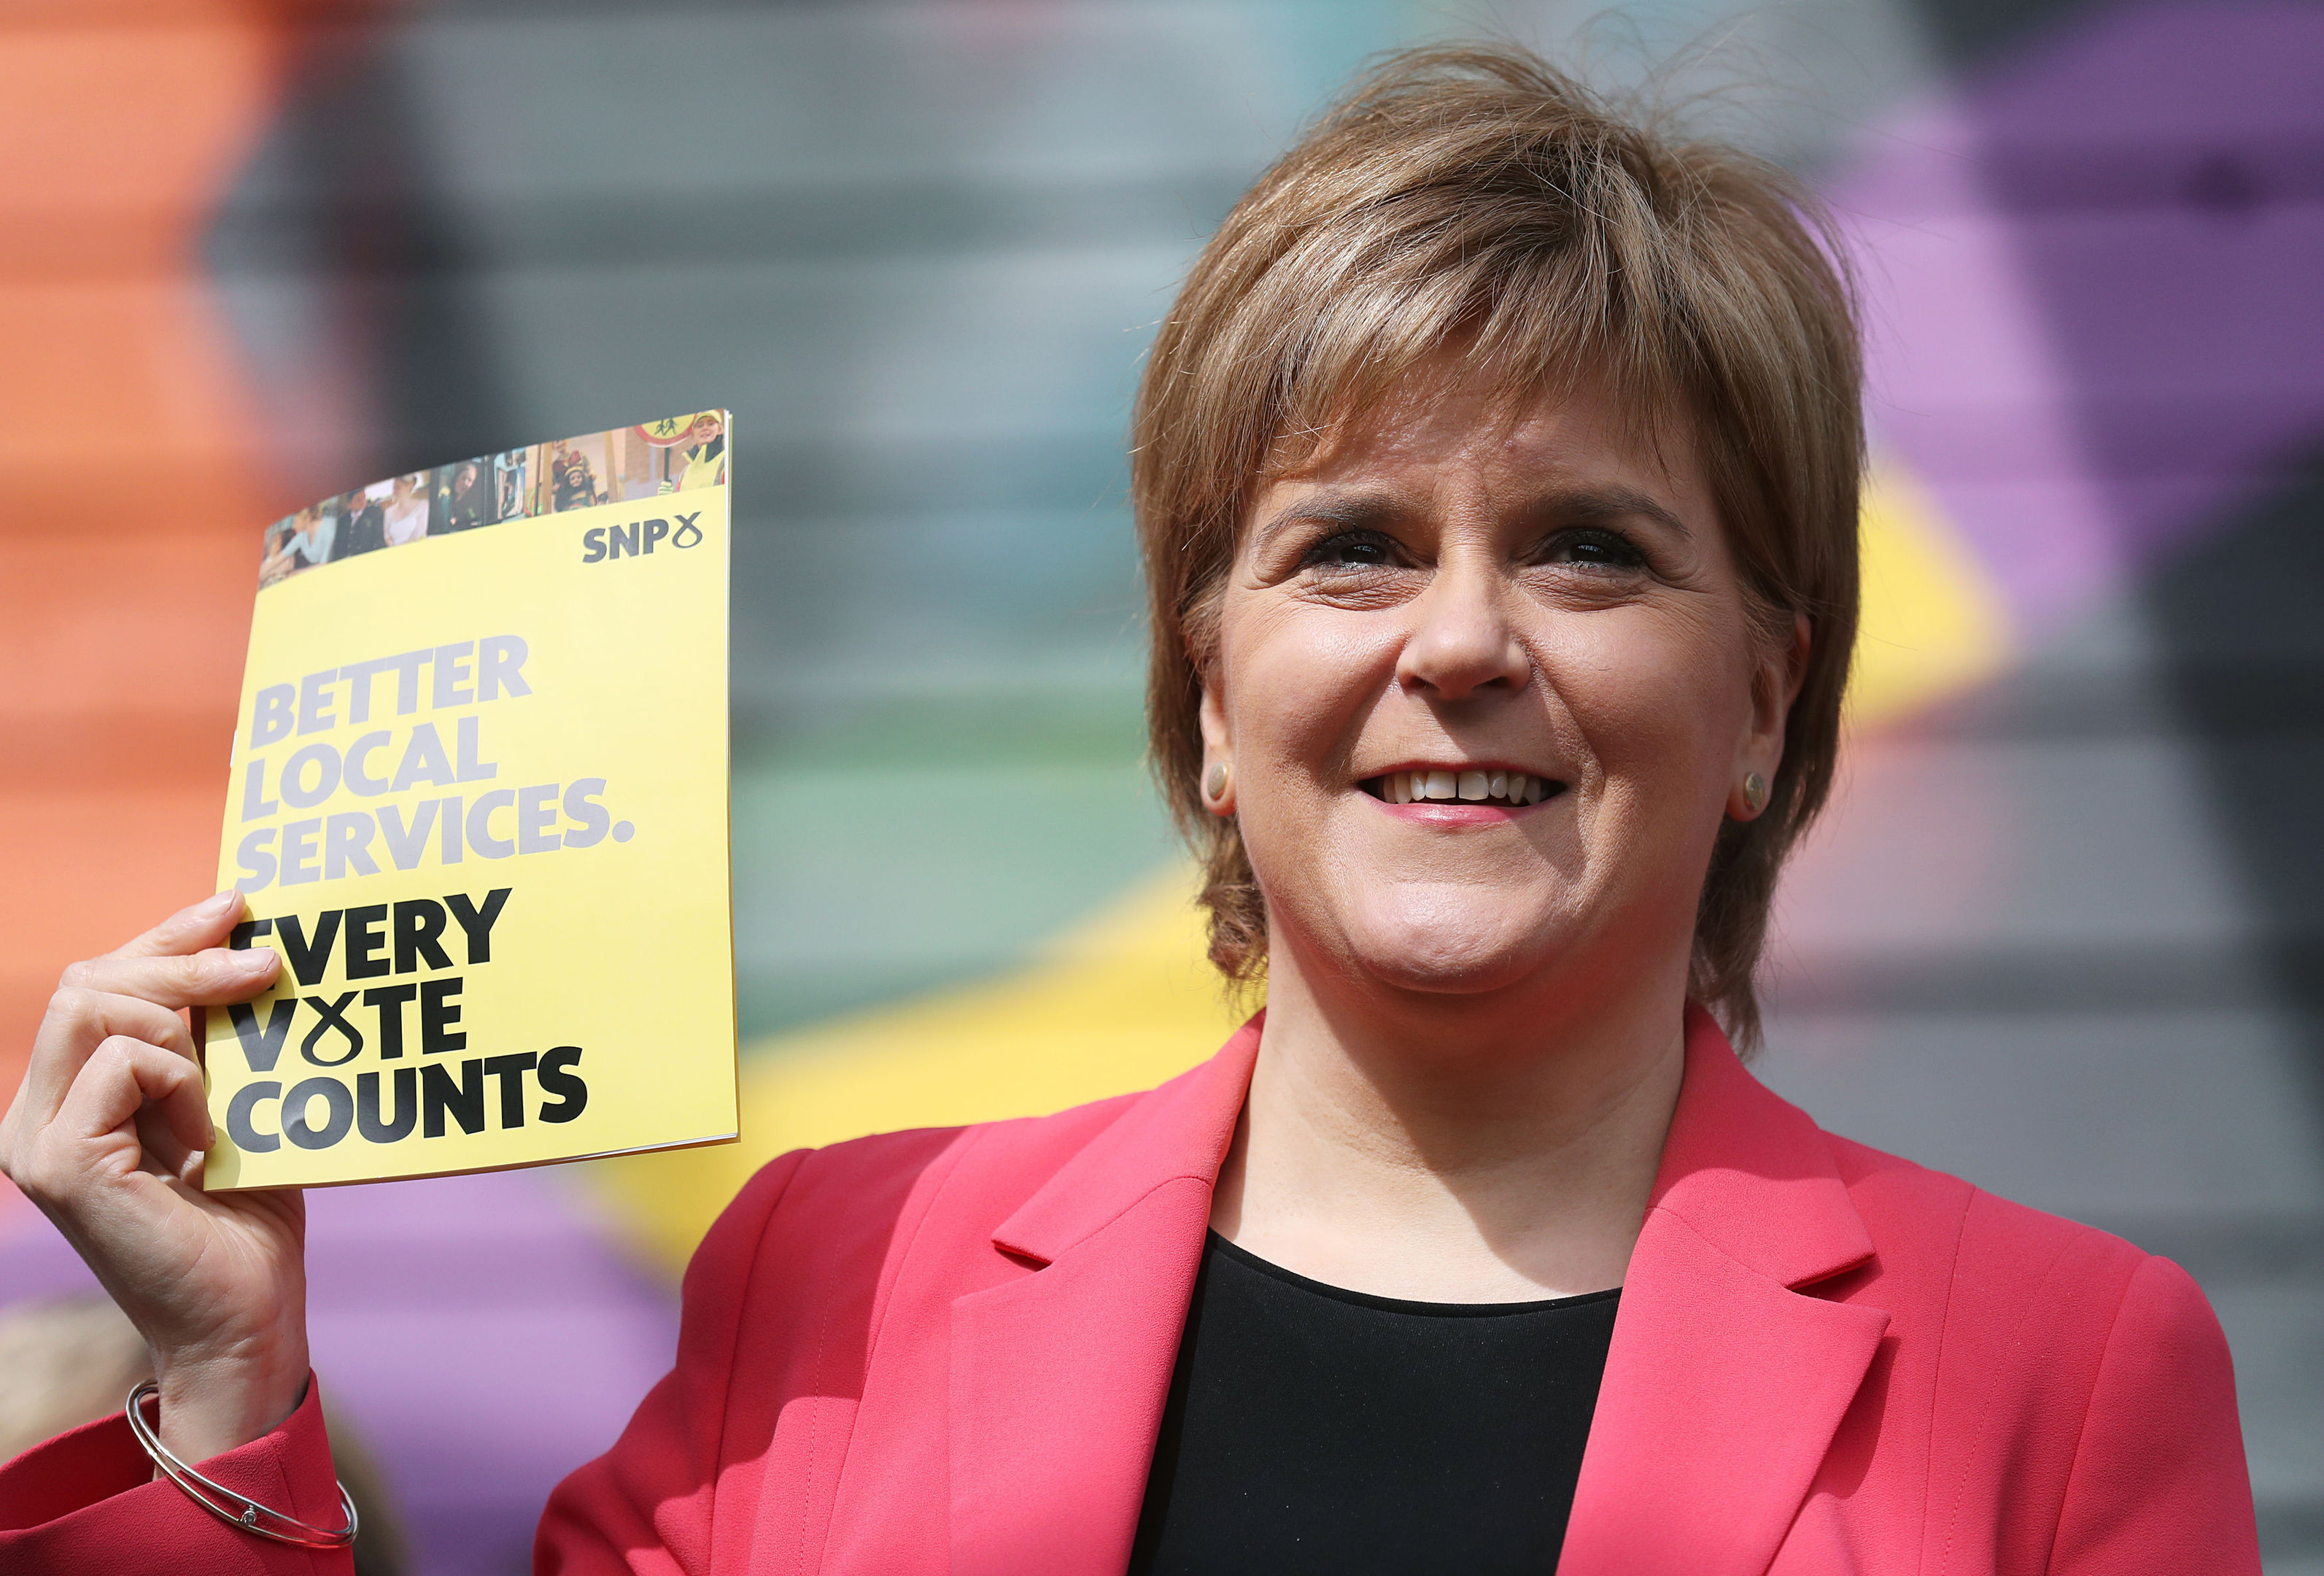 Nicola Sturgeon during the launch of the party's local government election manifesto at the Whale Arts Centre in Edinburgh. (Andrew Milligan/PA Wire)